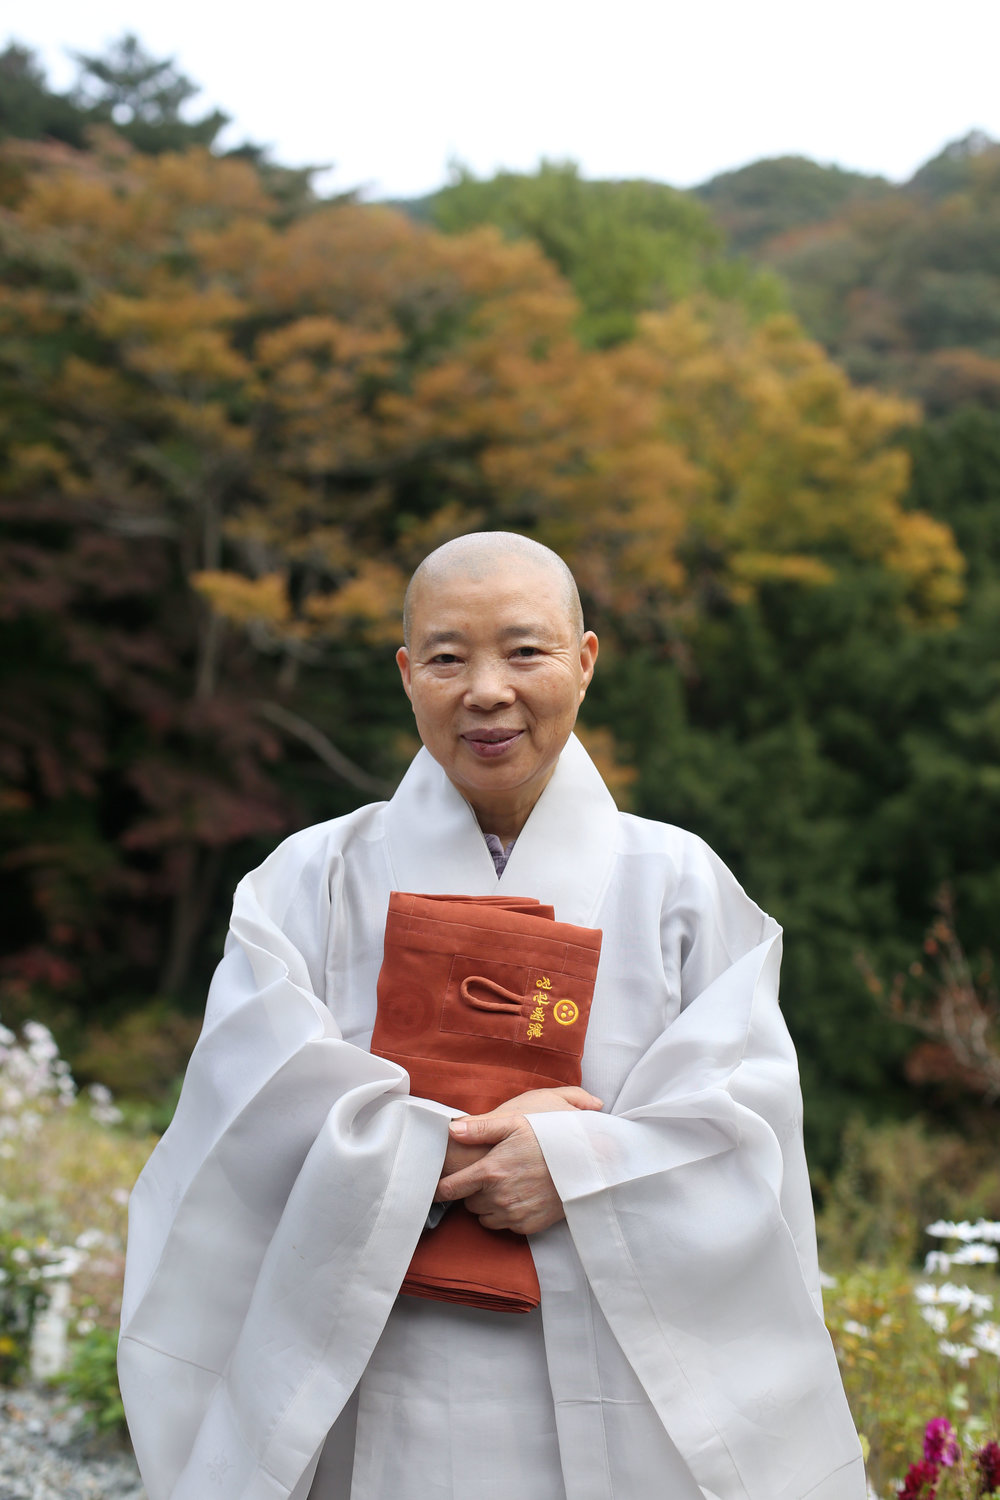 Chef's Table star and Buddhist nun, Jeong Kwan in South Korea.